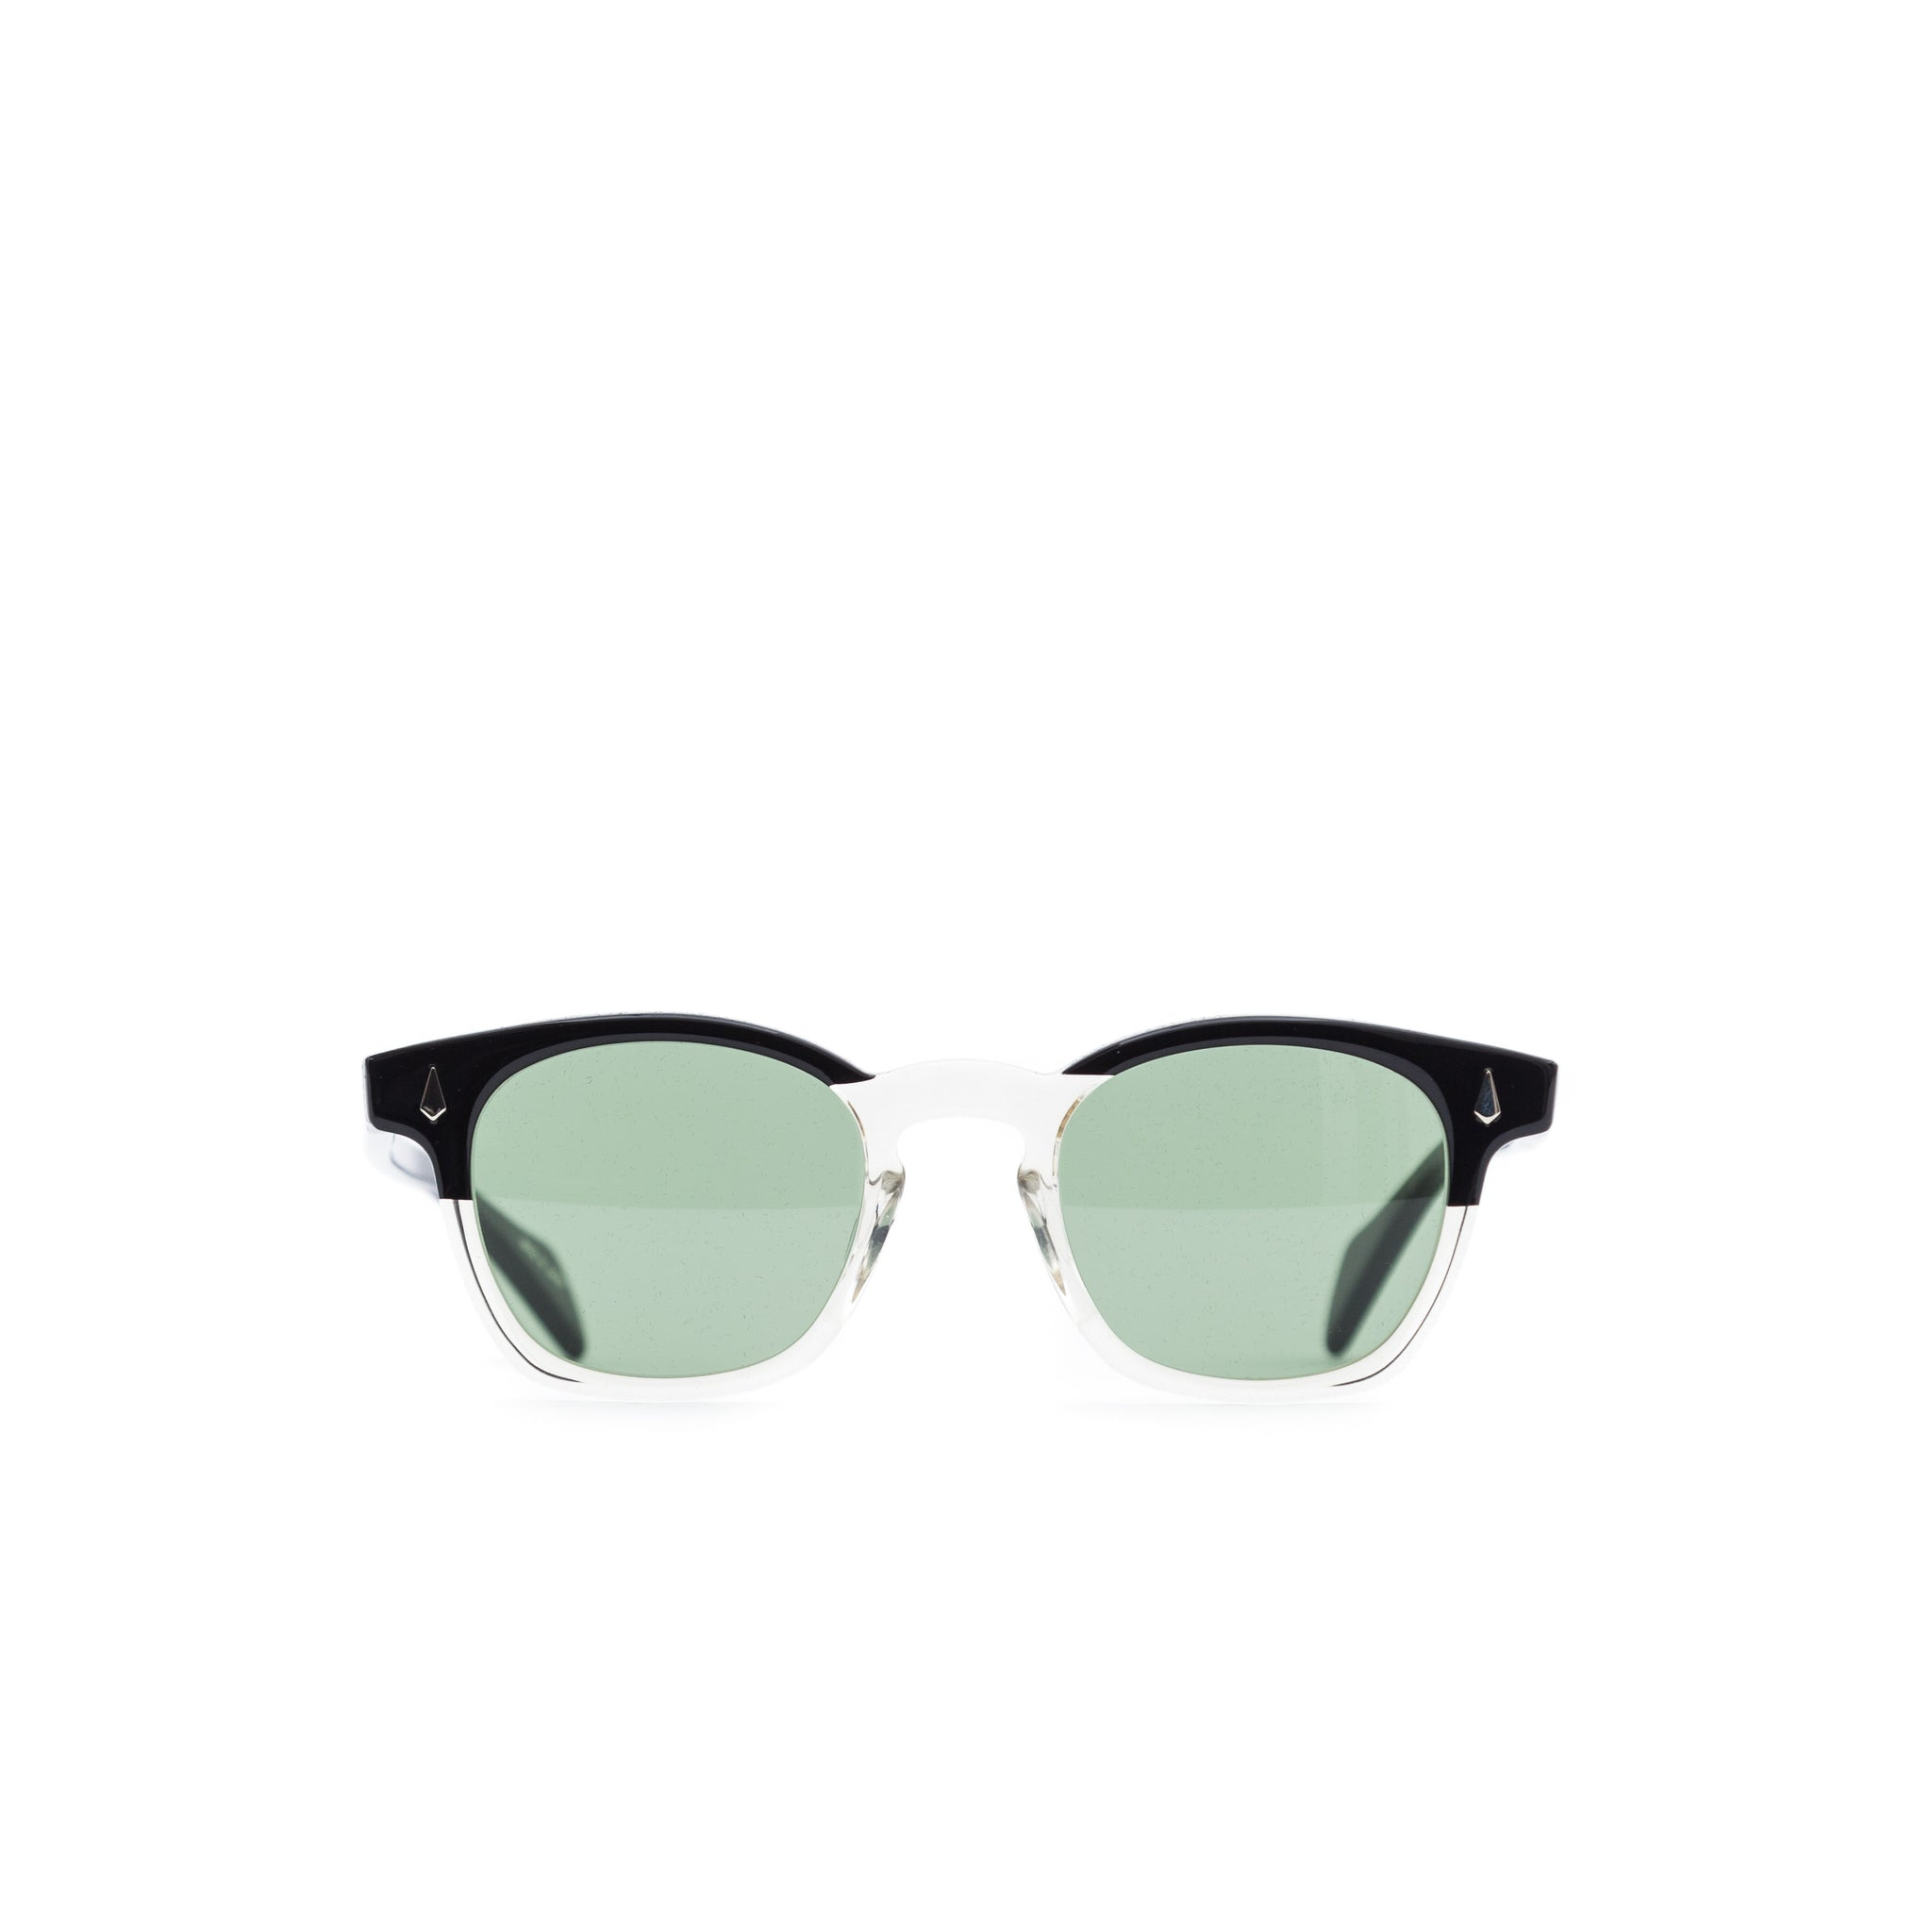 Wellington Sunglasses